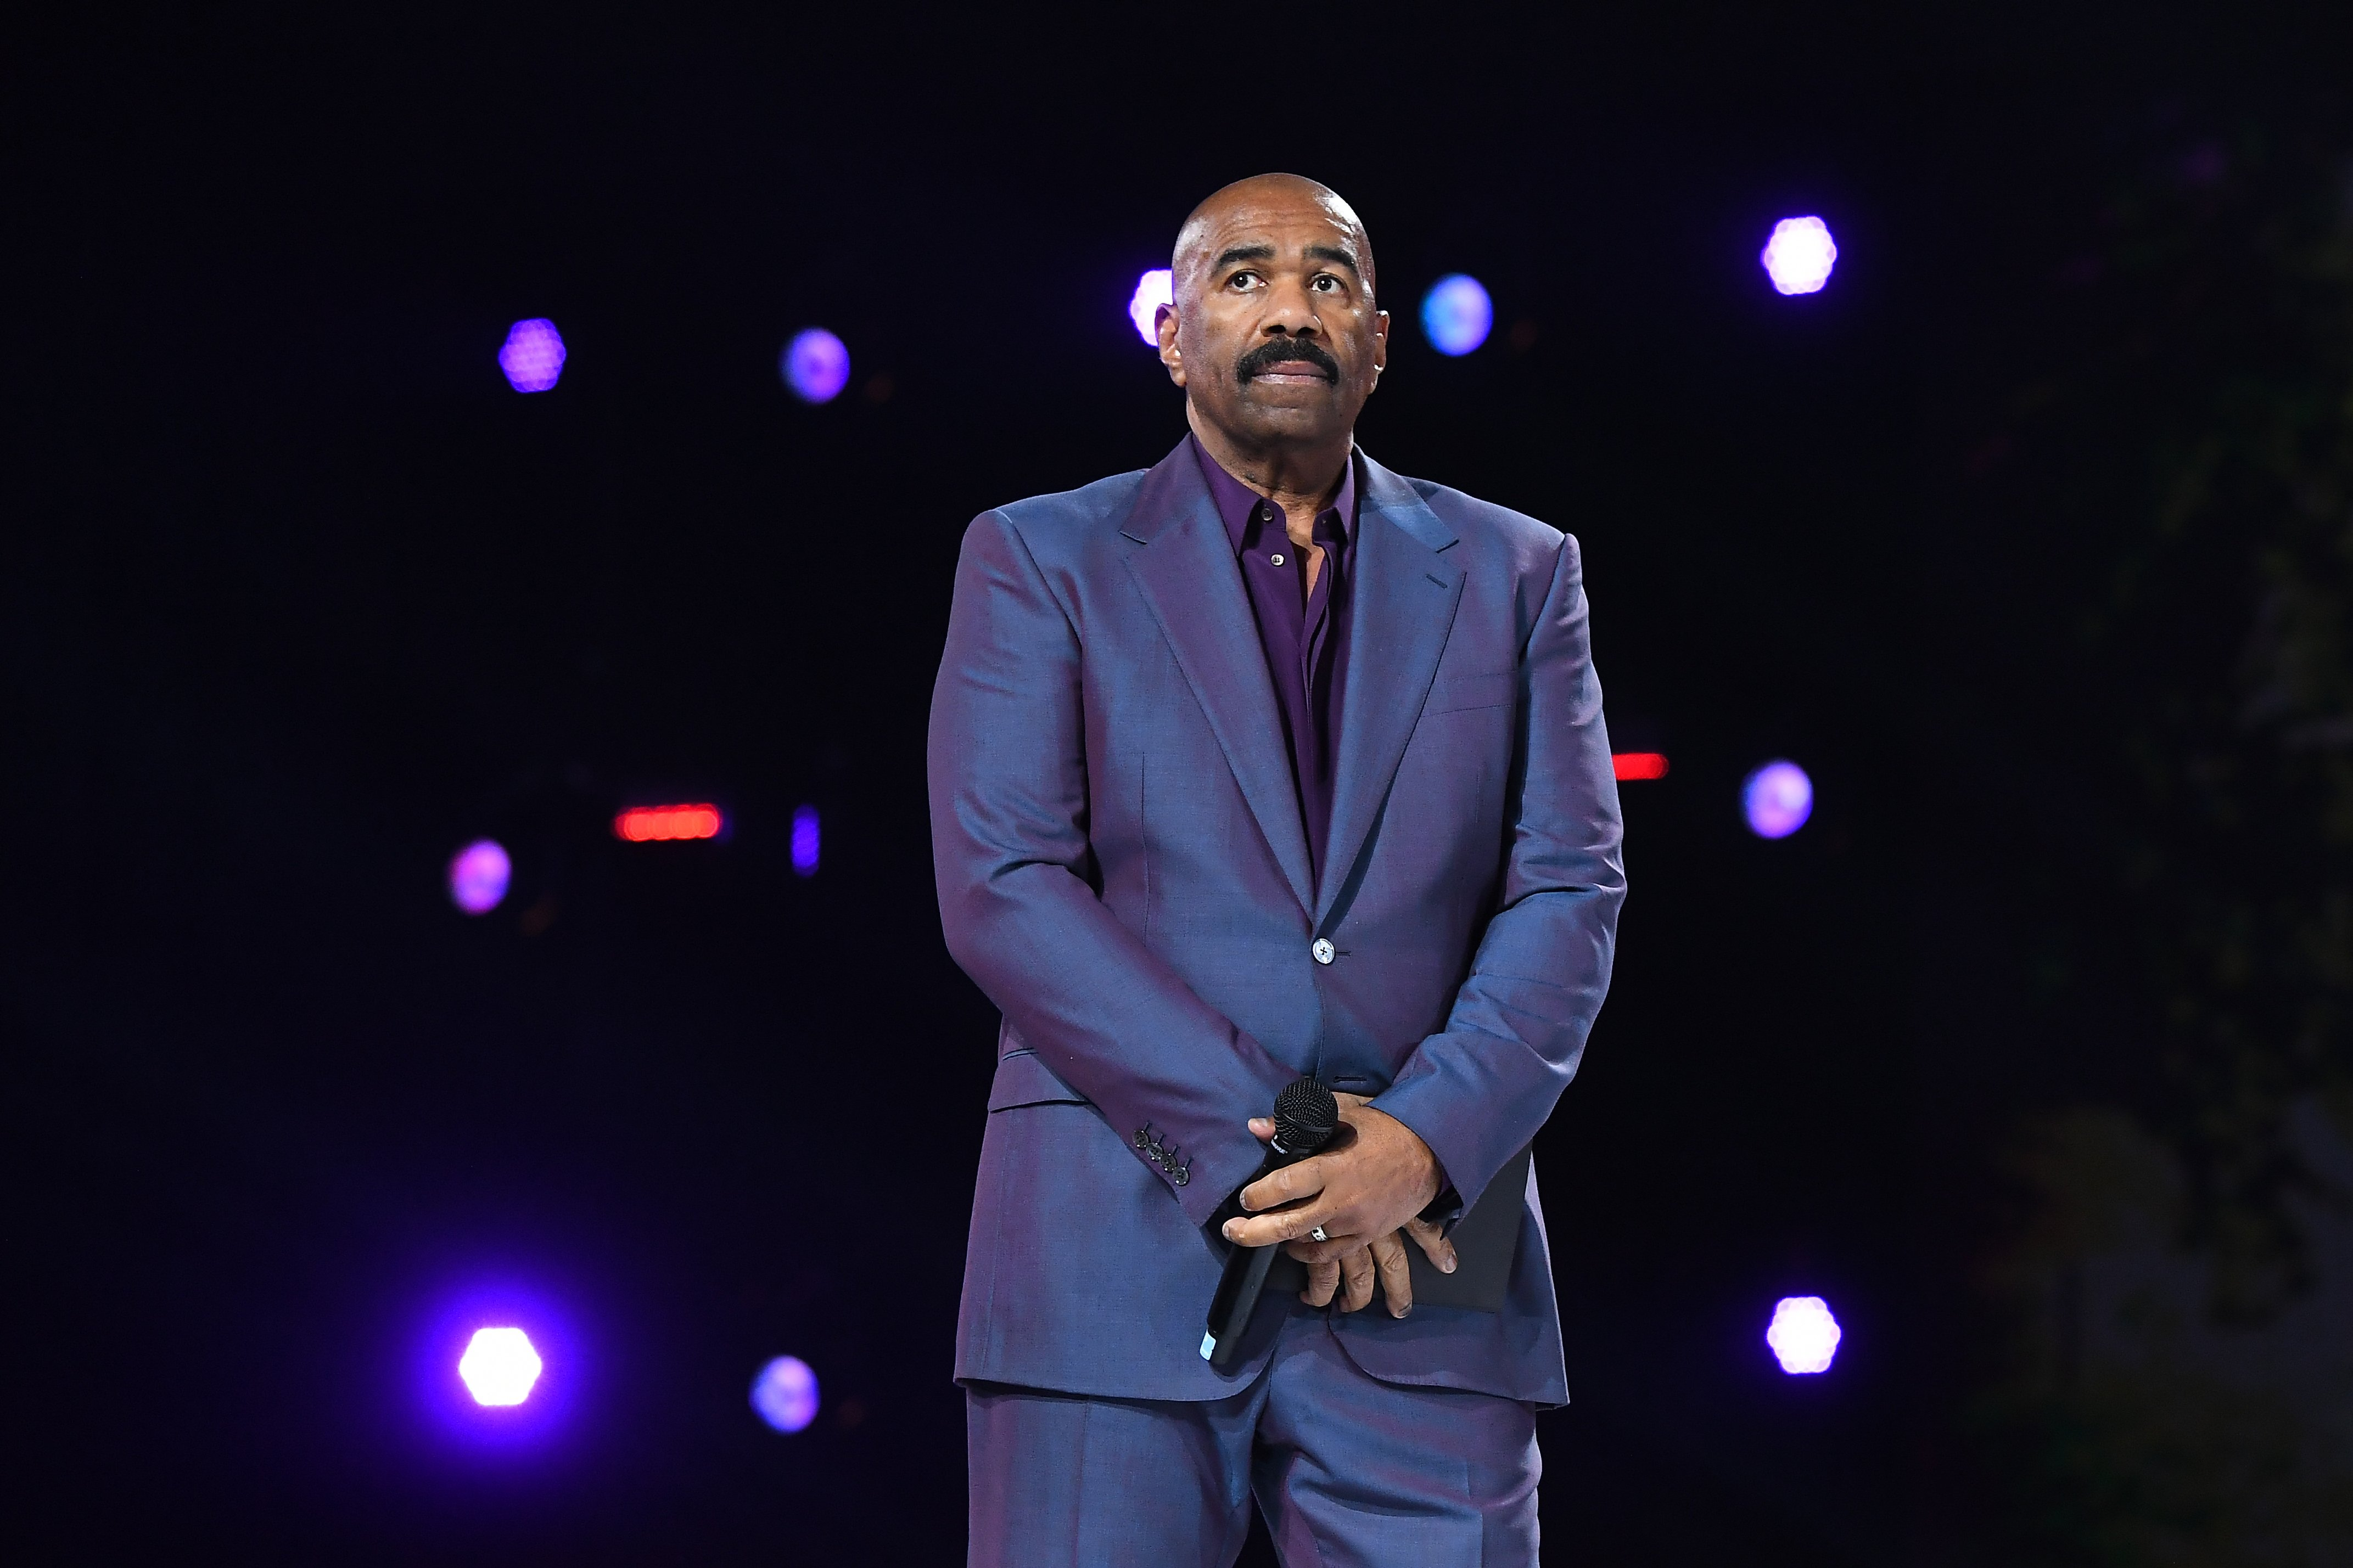 Steve Harvey at the Mercedes-Benz Stadium in Atlanta, Georgia on March 21, 2019. |Photo: Getty Images